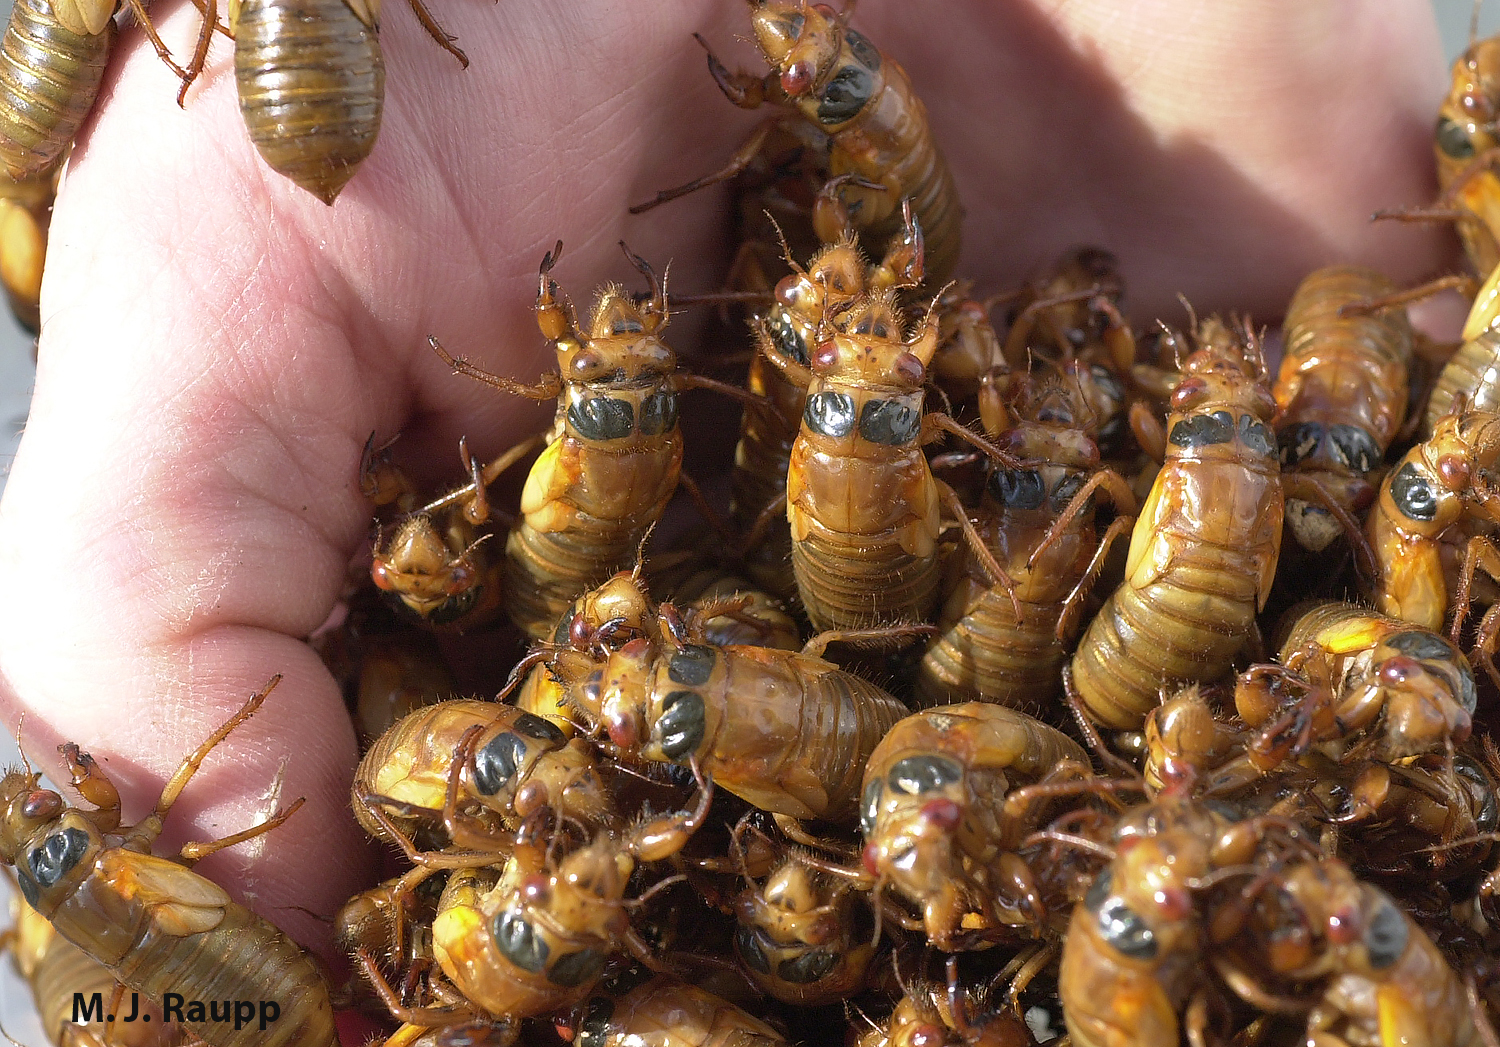 In May, cicada nymphs will appear by the handful in areas treated to Brood V.